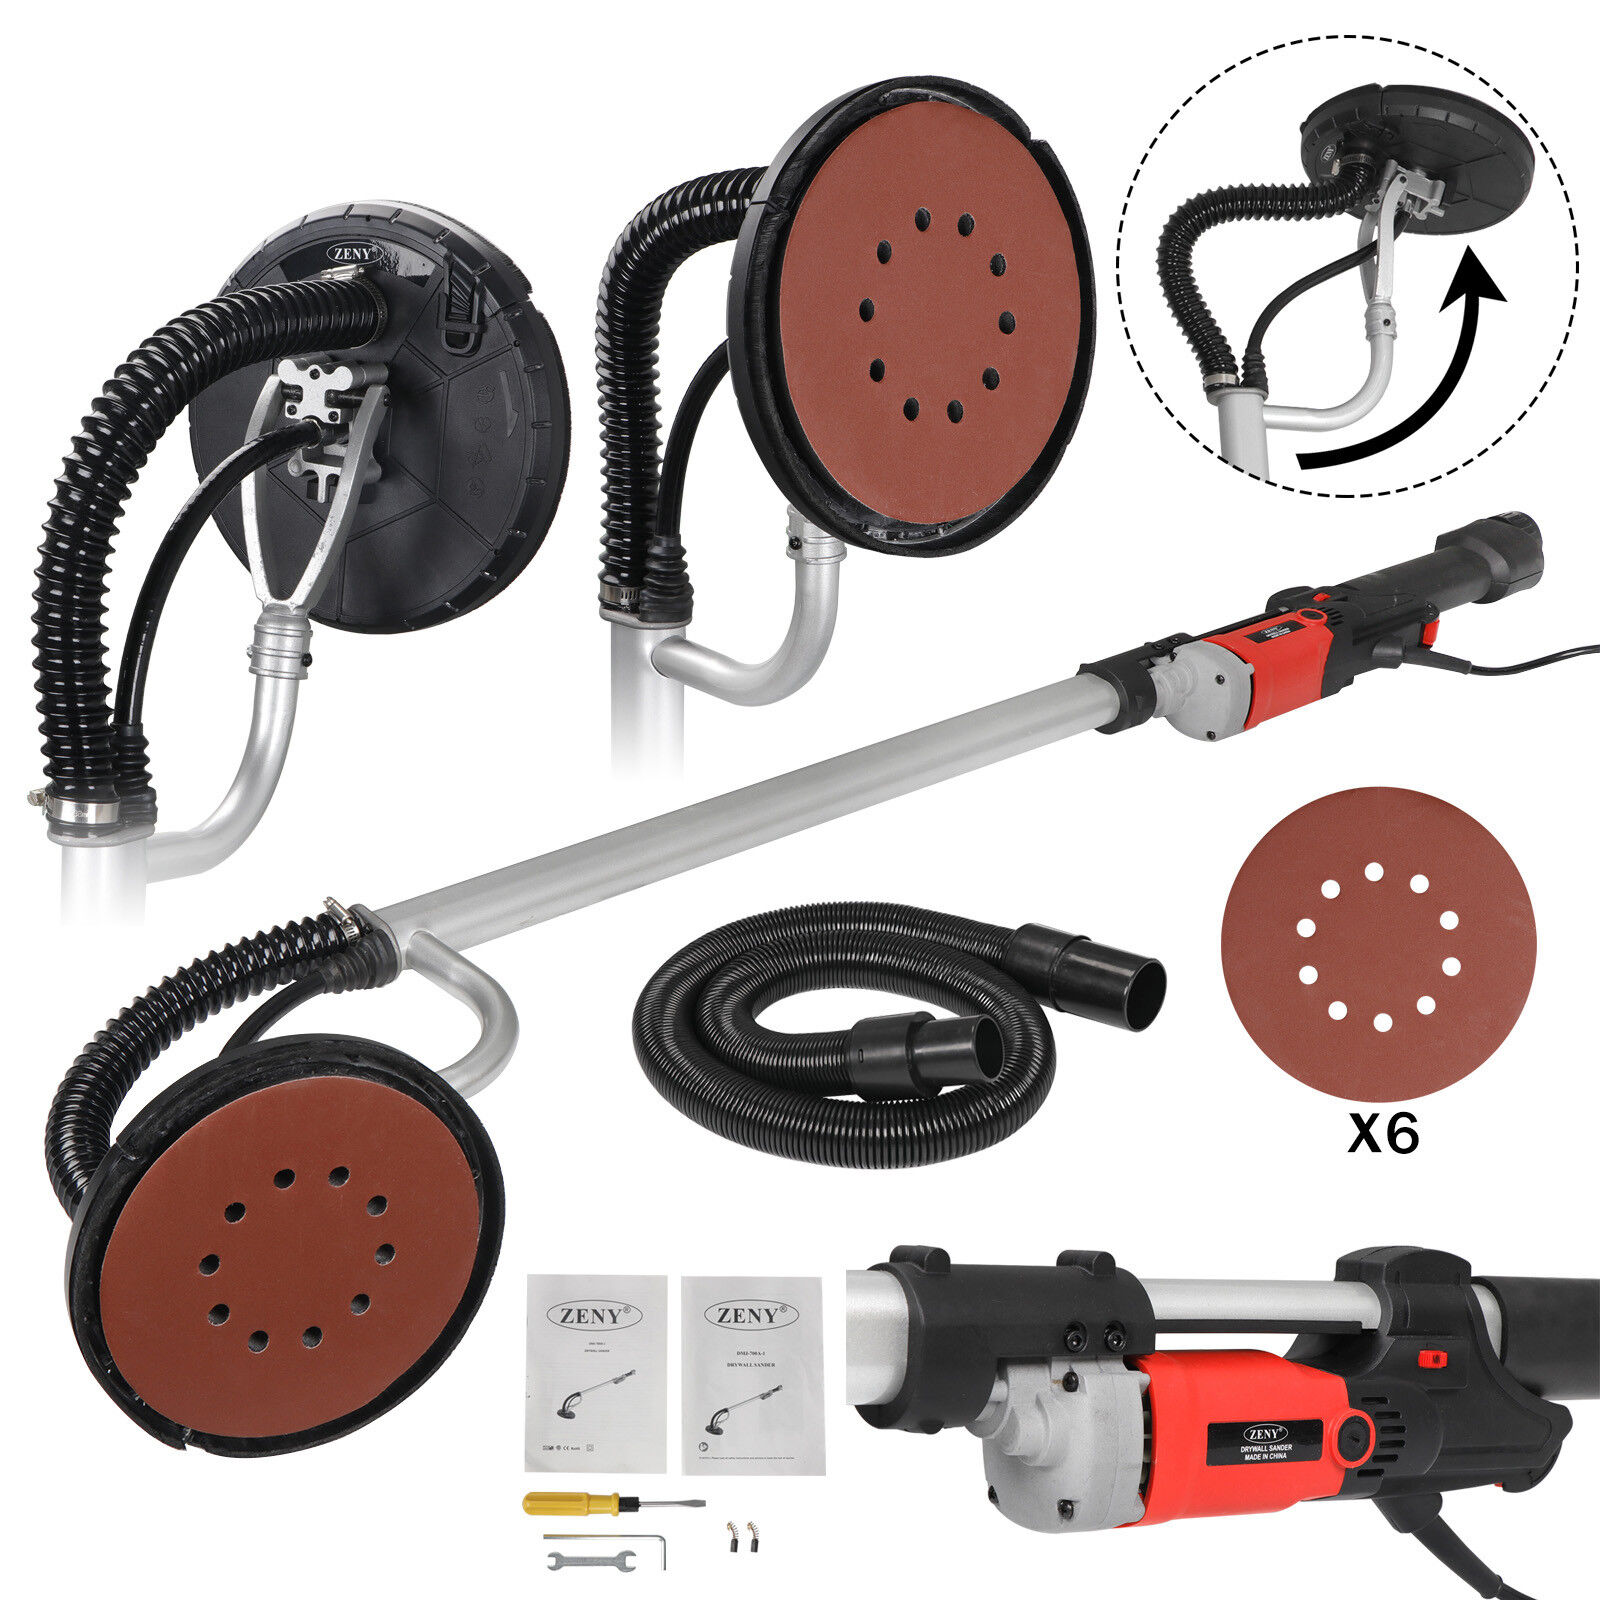 Large Power Drywall Sander 800W Commercial Electric Variable Speed Sanding Pad Business & Industrial